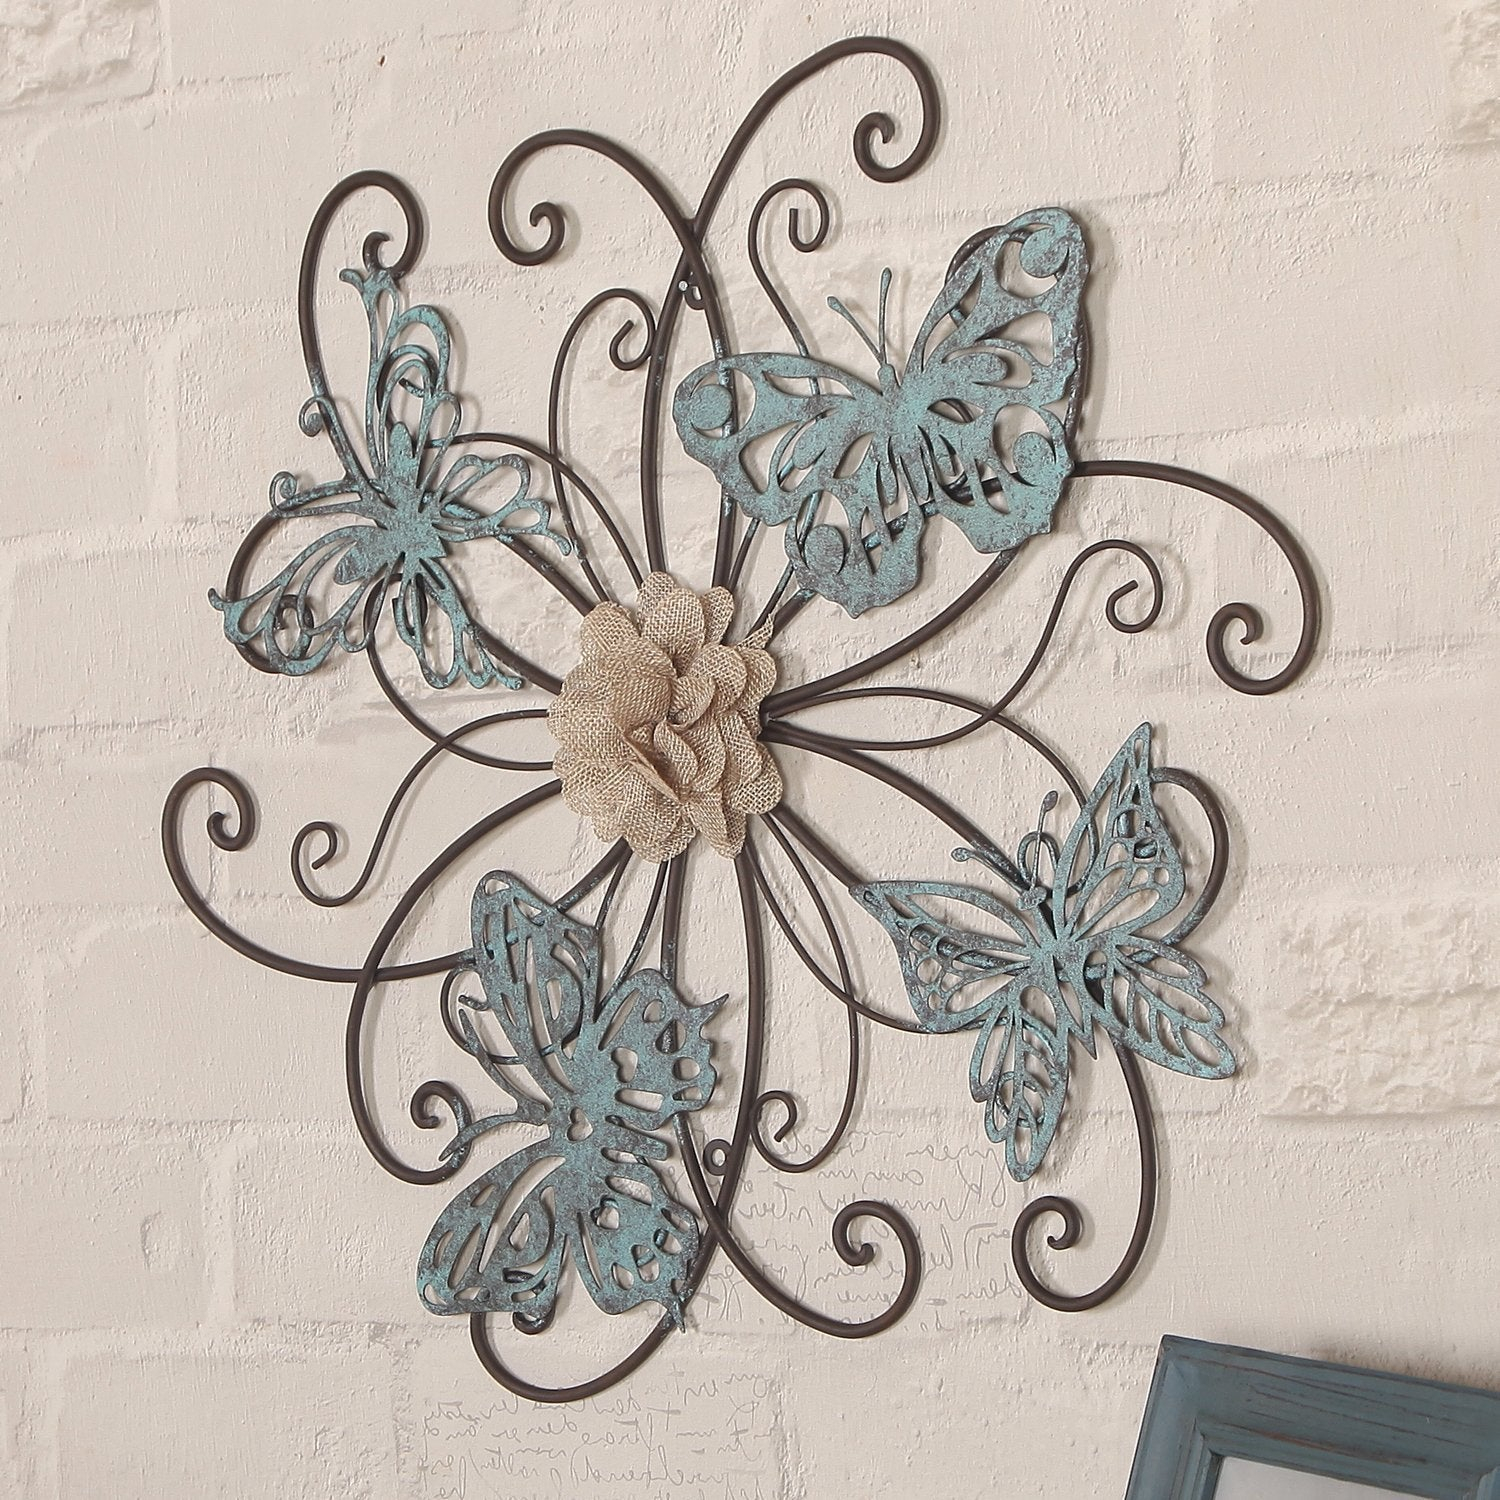 Adeco Flower And Butterfly Urban Design Metal Wall Decor For Nature Home Art In Flower And Butterfly Urban Design Metal Wall Decor (View 5 of 30)